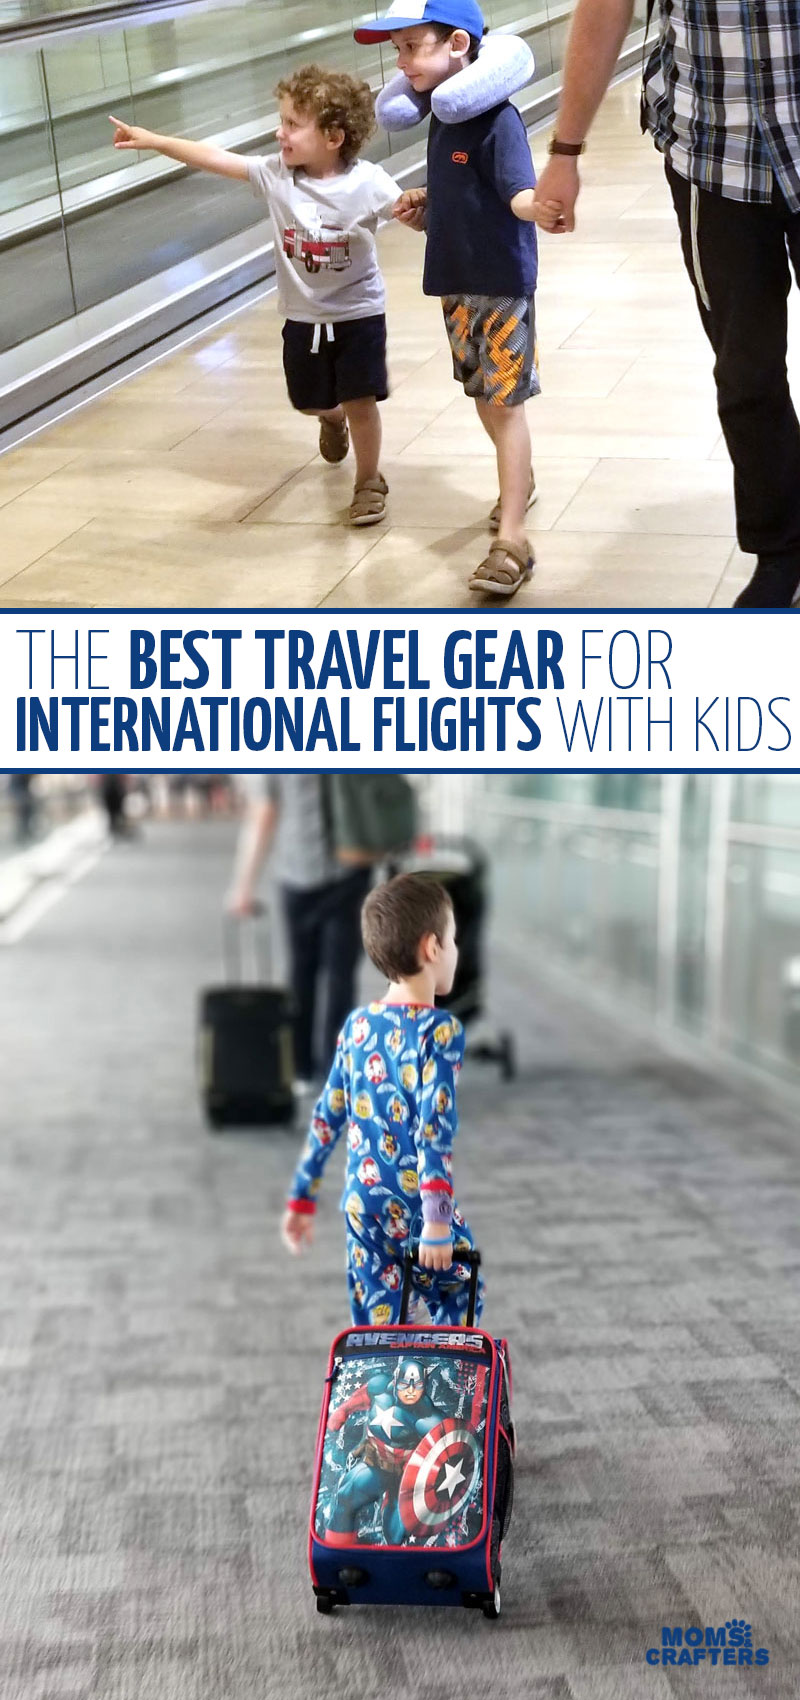 Click for the best travel gear for traveling with toddlers preschoolers and toddlers! These must haves for international travel will help you going on an airplane with kids and flying long haul flights.